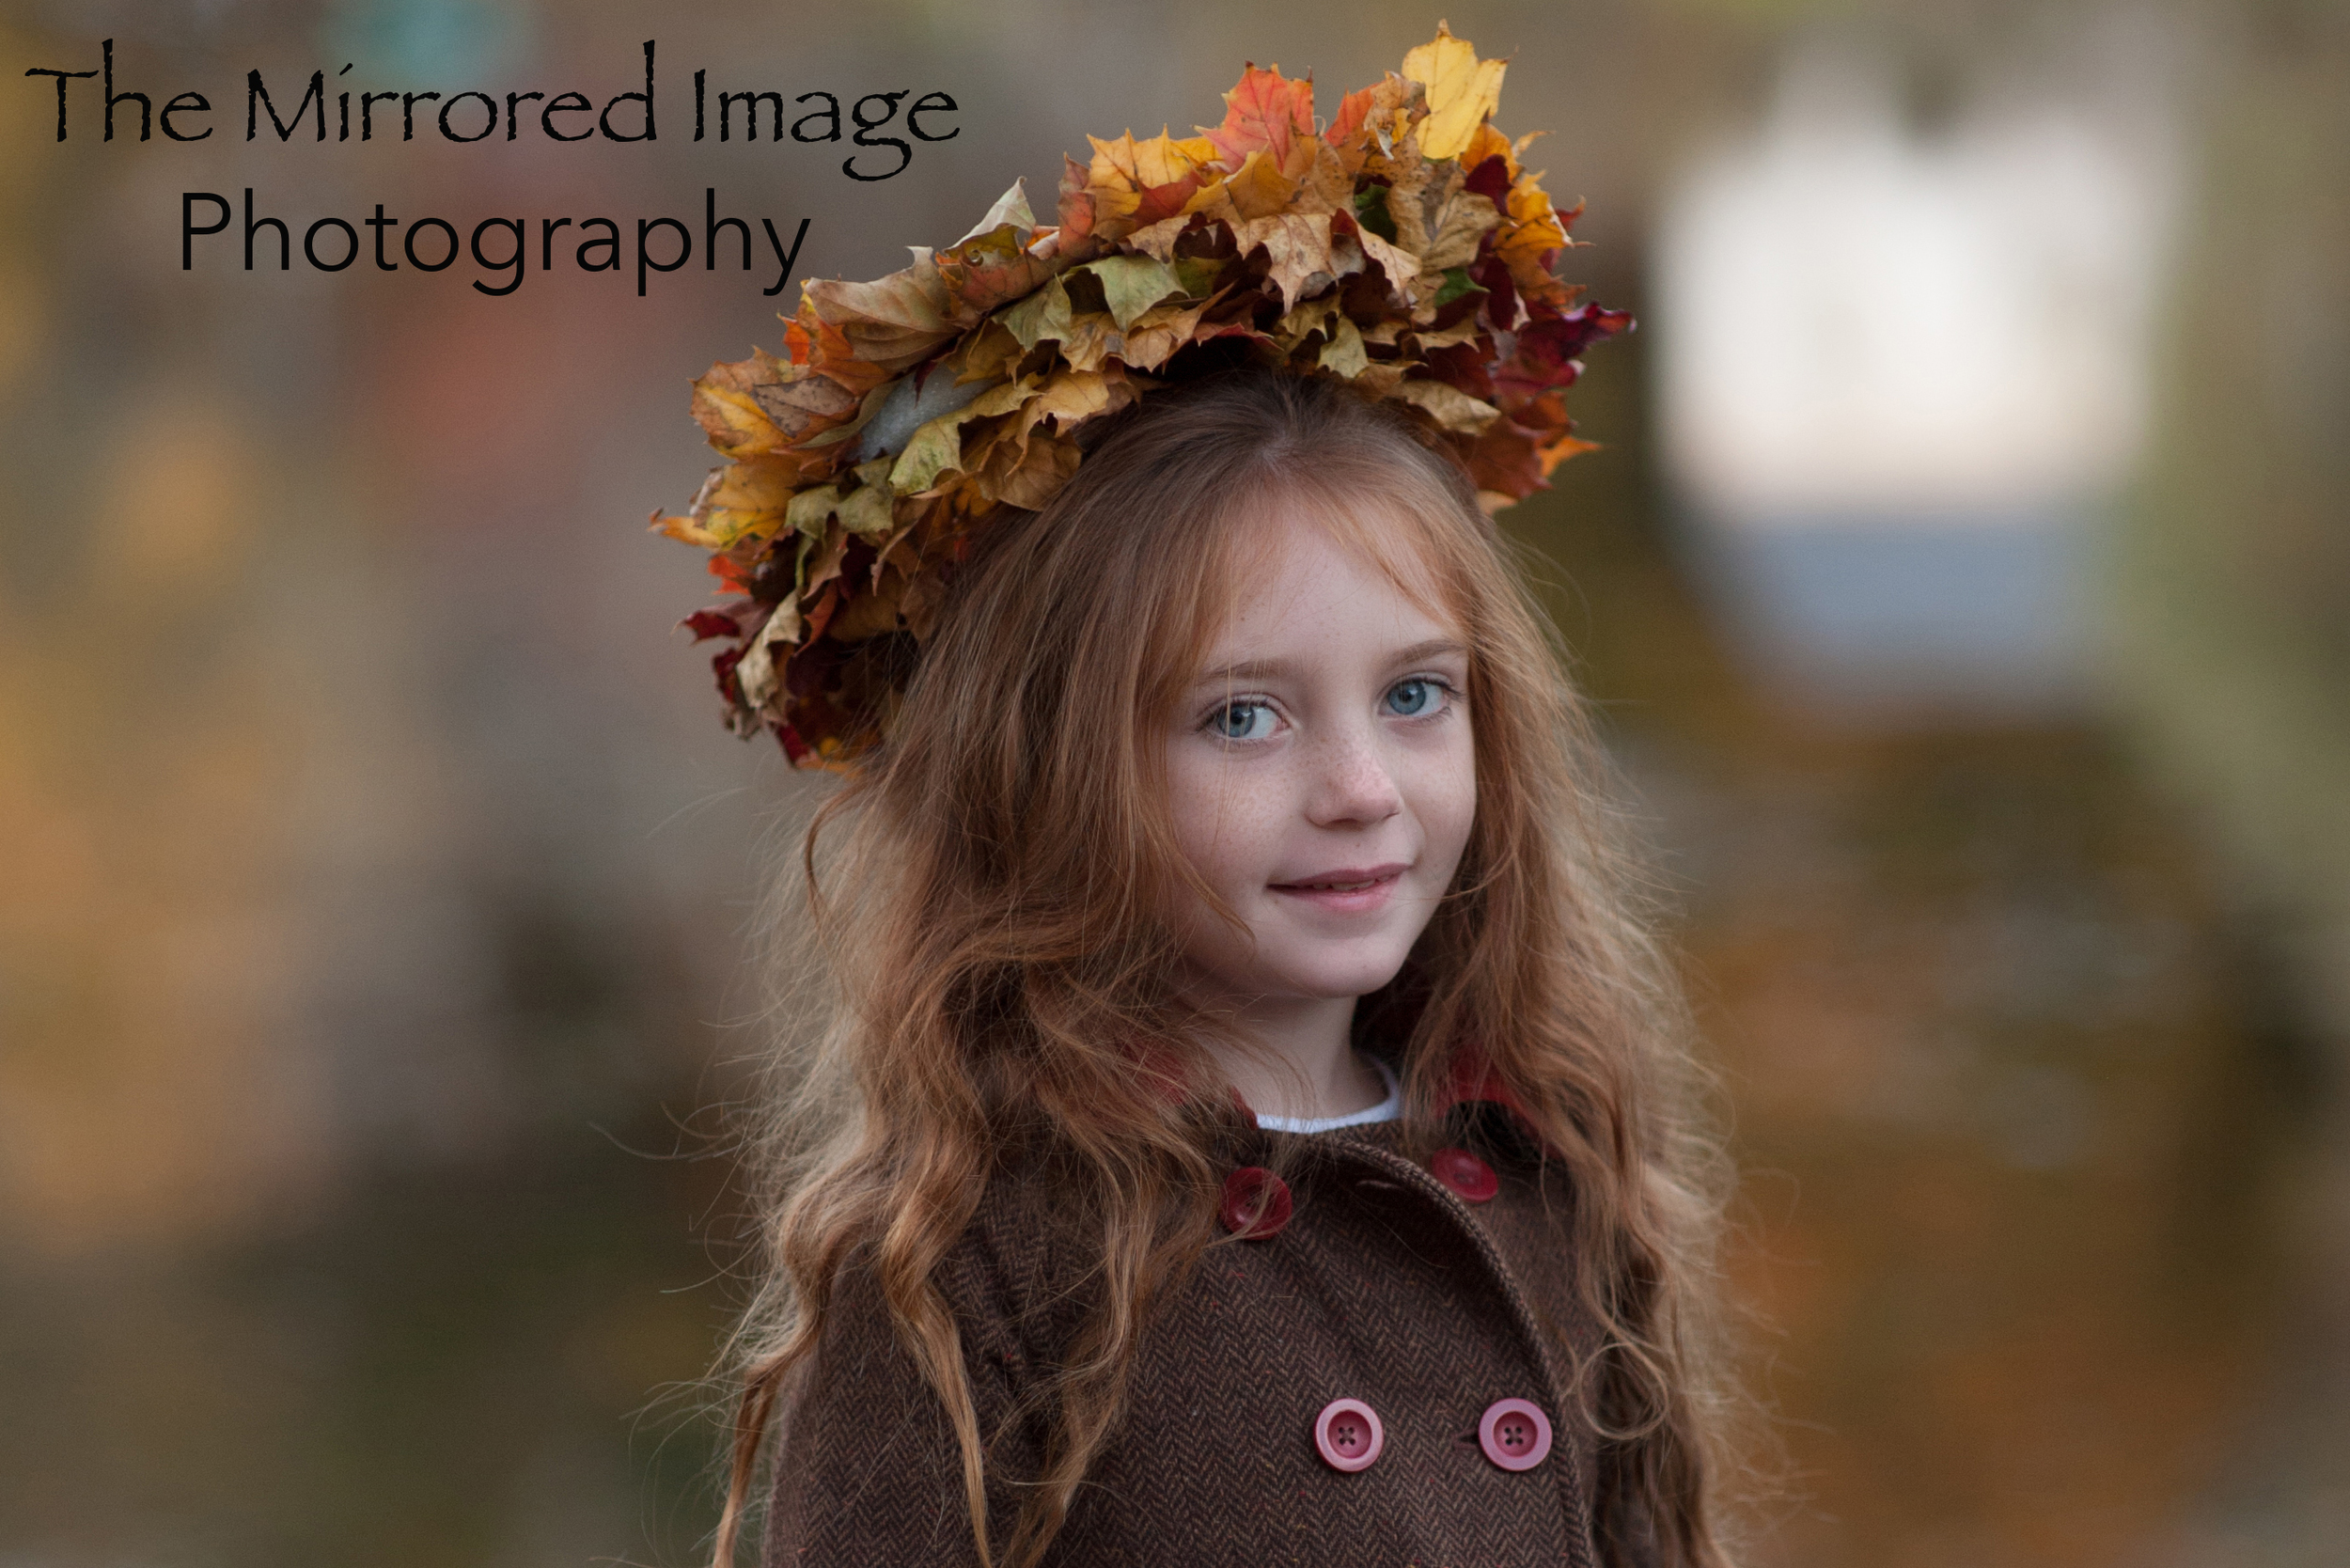 Children's Photography, Fine Art Photography, Fine Art Children's Photo, Children's Photography, Kid's Photos, Autumn leaves